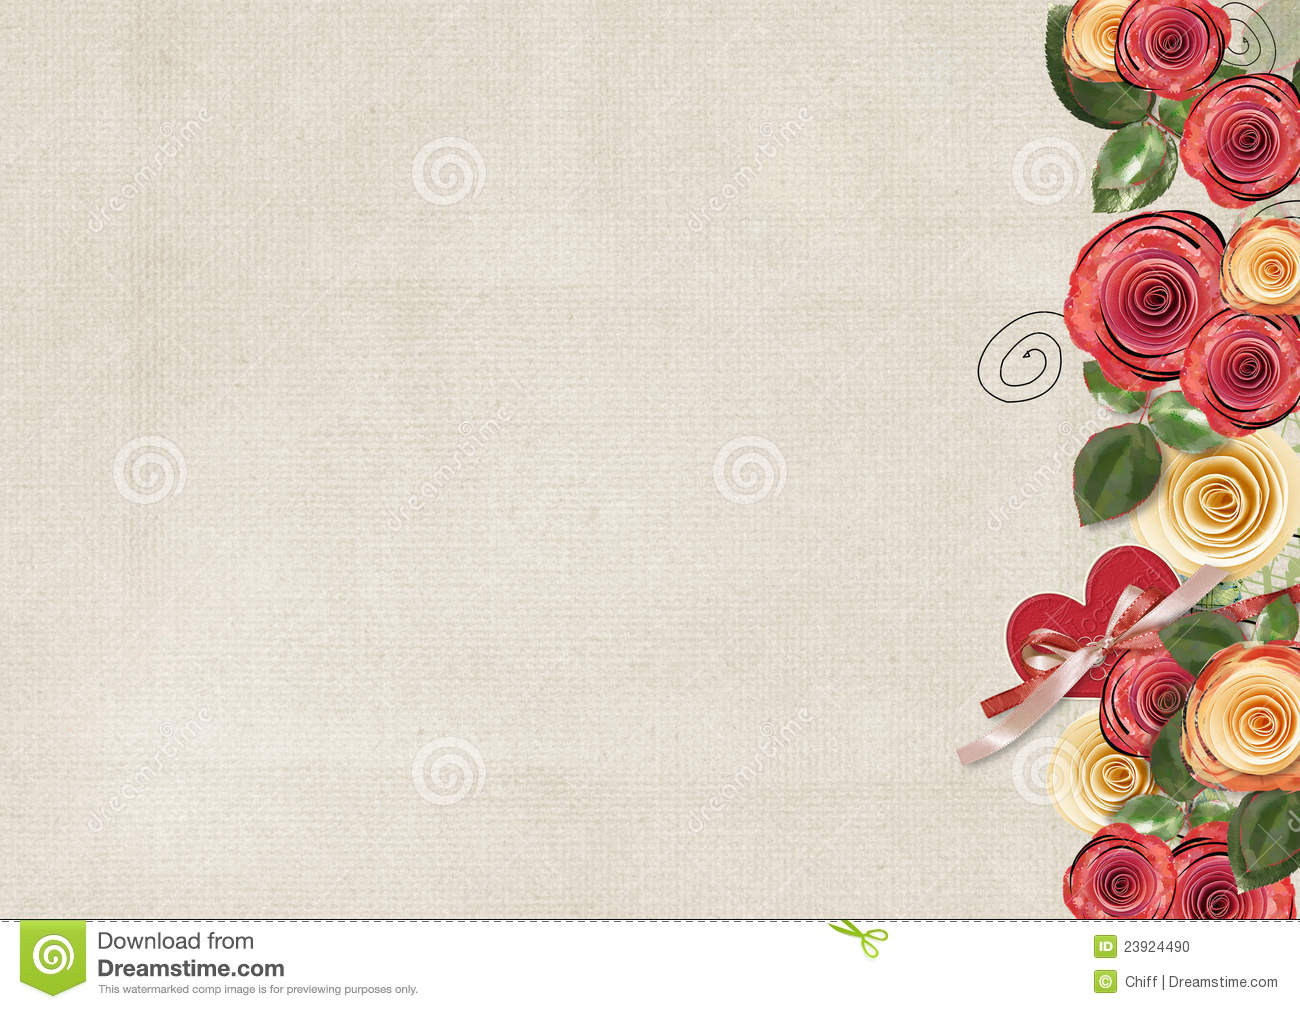 Vintage Background With Roses For Congratulations Stock Photo - Image ...